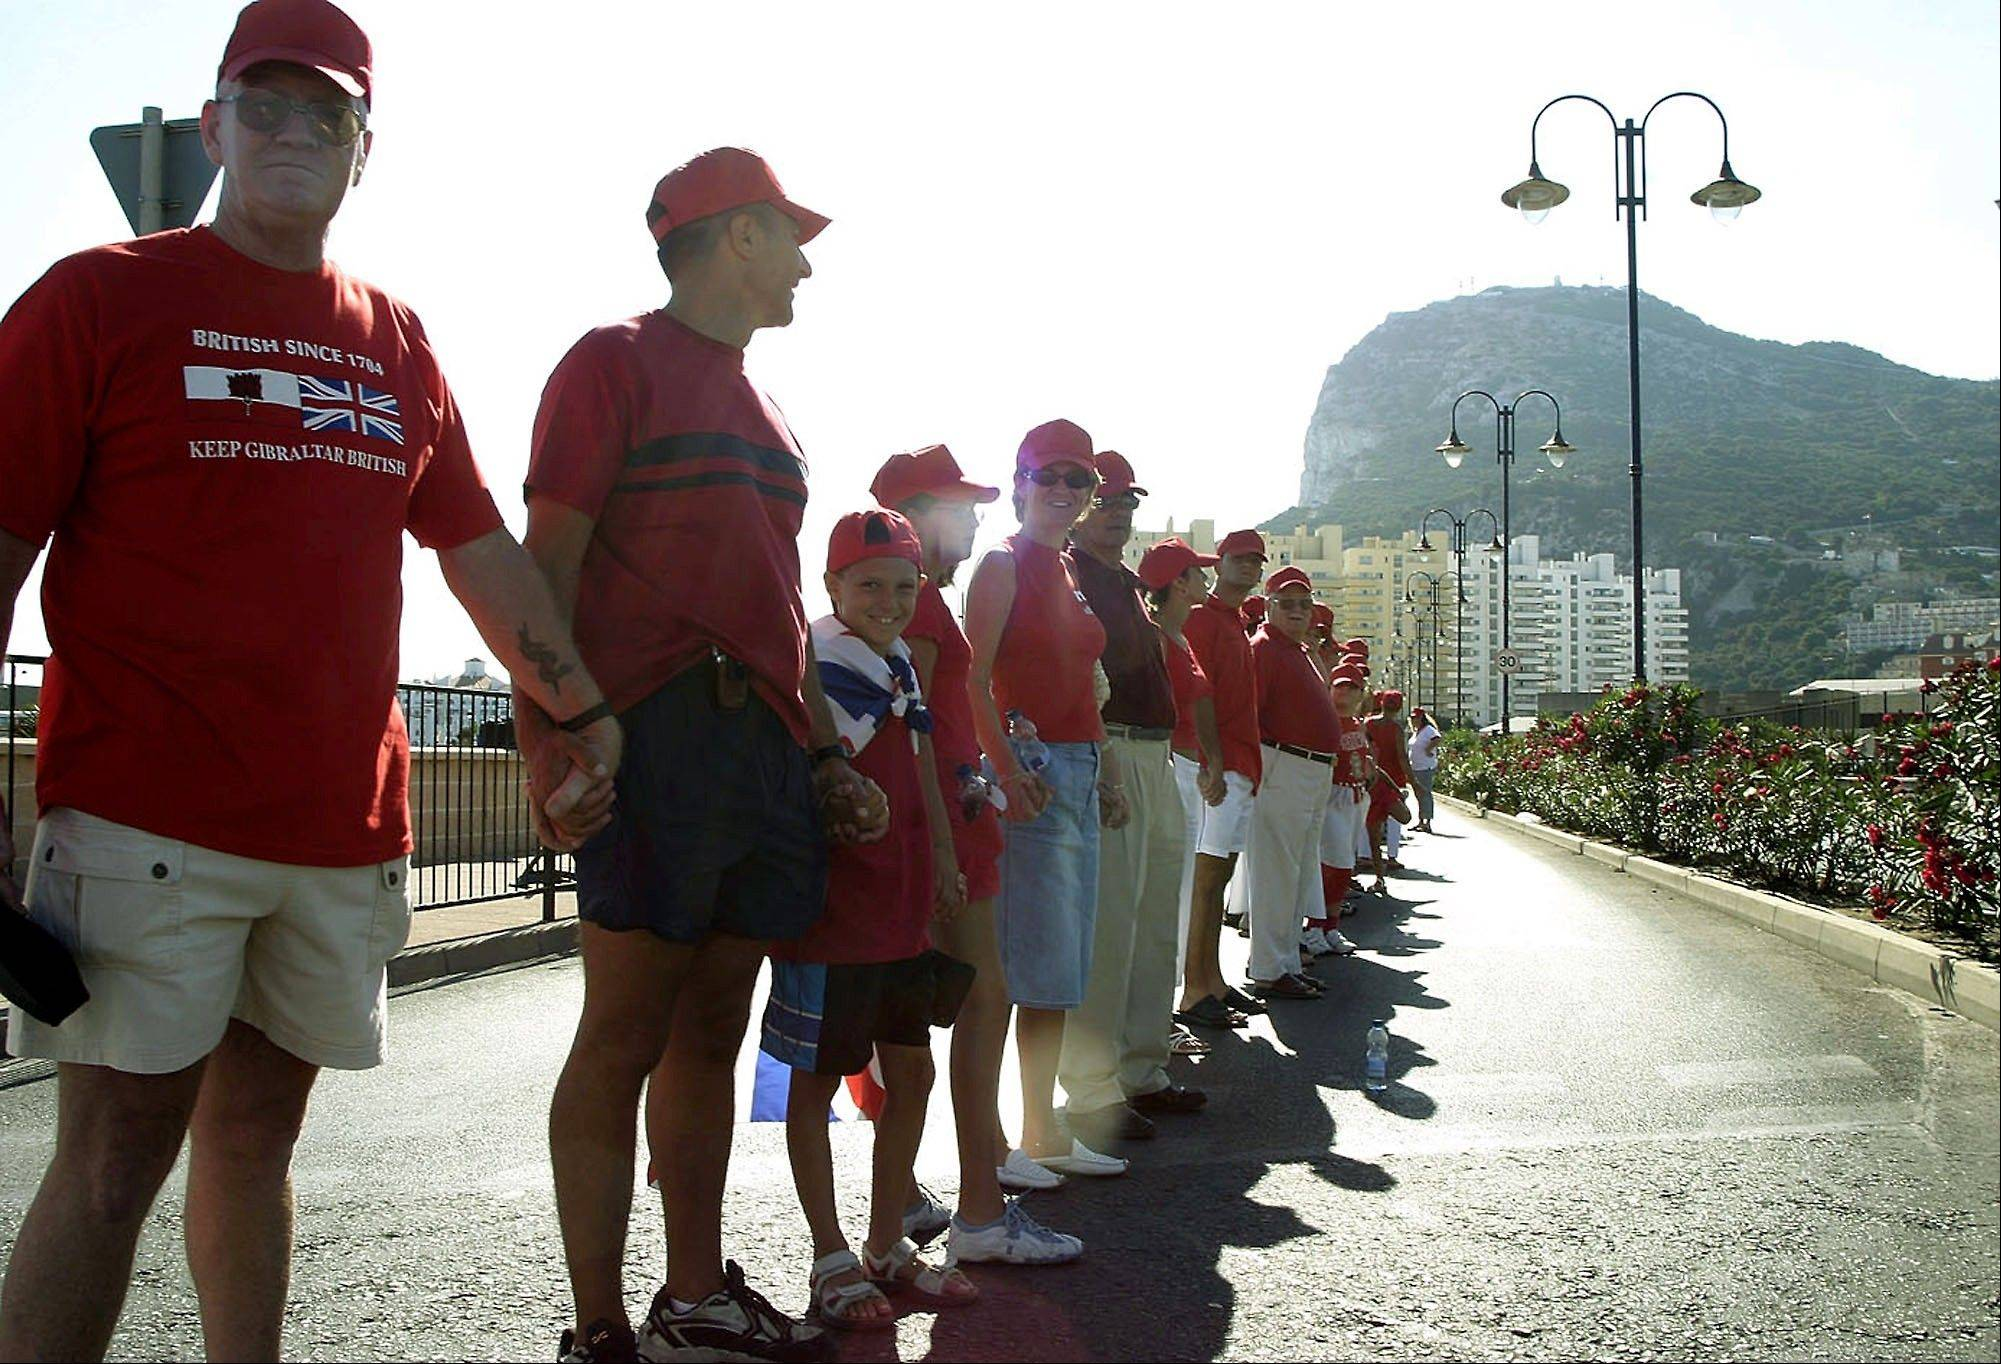 Gibraltar residents form a human chain around the British colony at the tip of the Iberian Peninsula, celebrating the 300th anniversary of the territory's capture from Spain. Spain wants it back, but Britain says the decision lies with the inhabitants of the Mediterranean enclave.